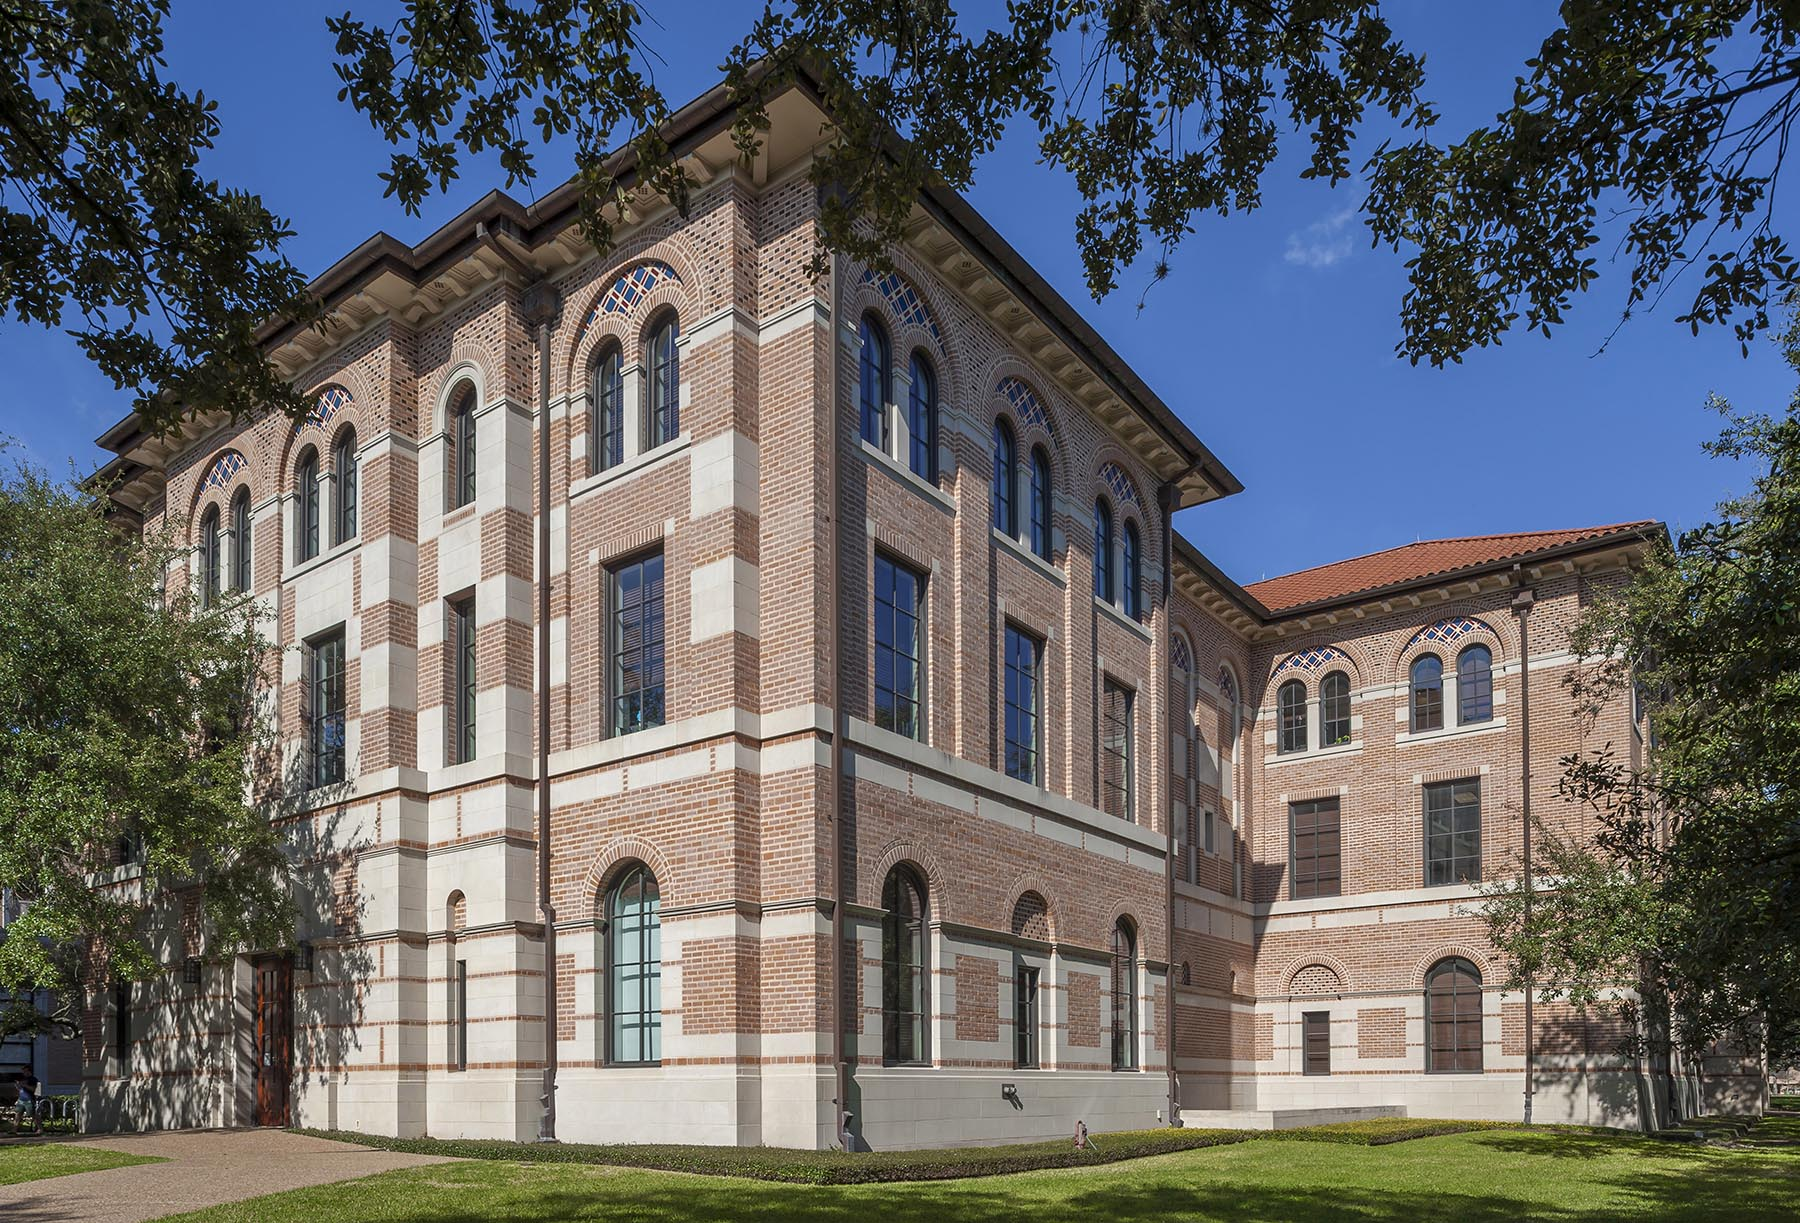 HUMANITIES BUILDING RICE UNIVERSITY Allan Greenberg Architect